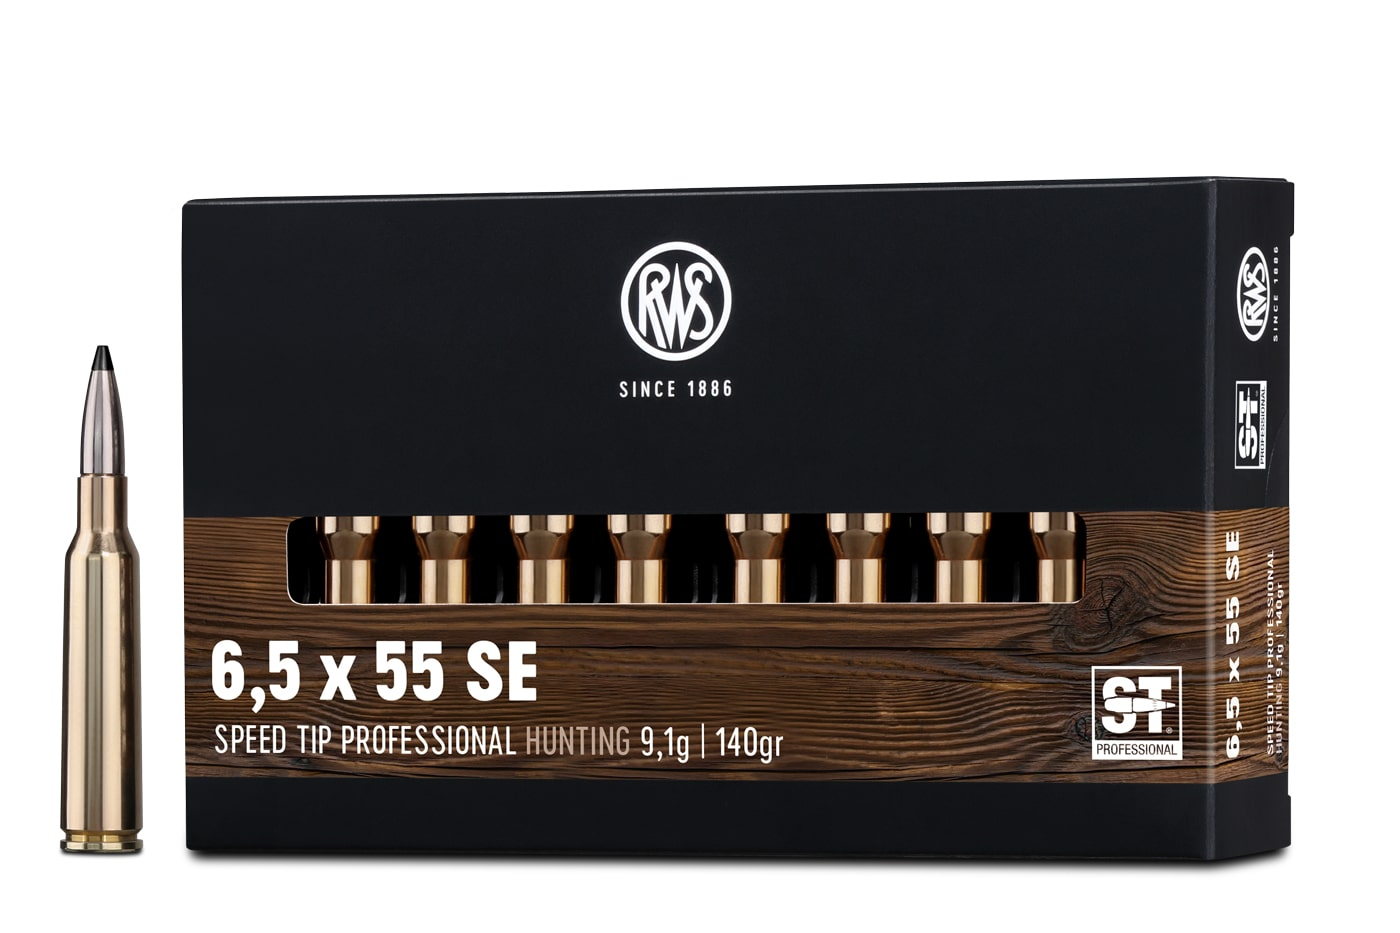 RWS 6,5 x 55 SE Creedmoor SPEED TIP PROFESSIONAL